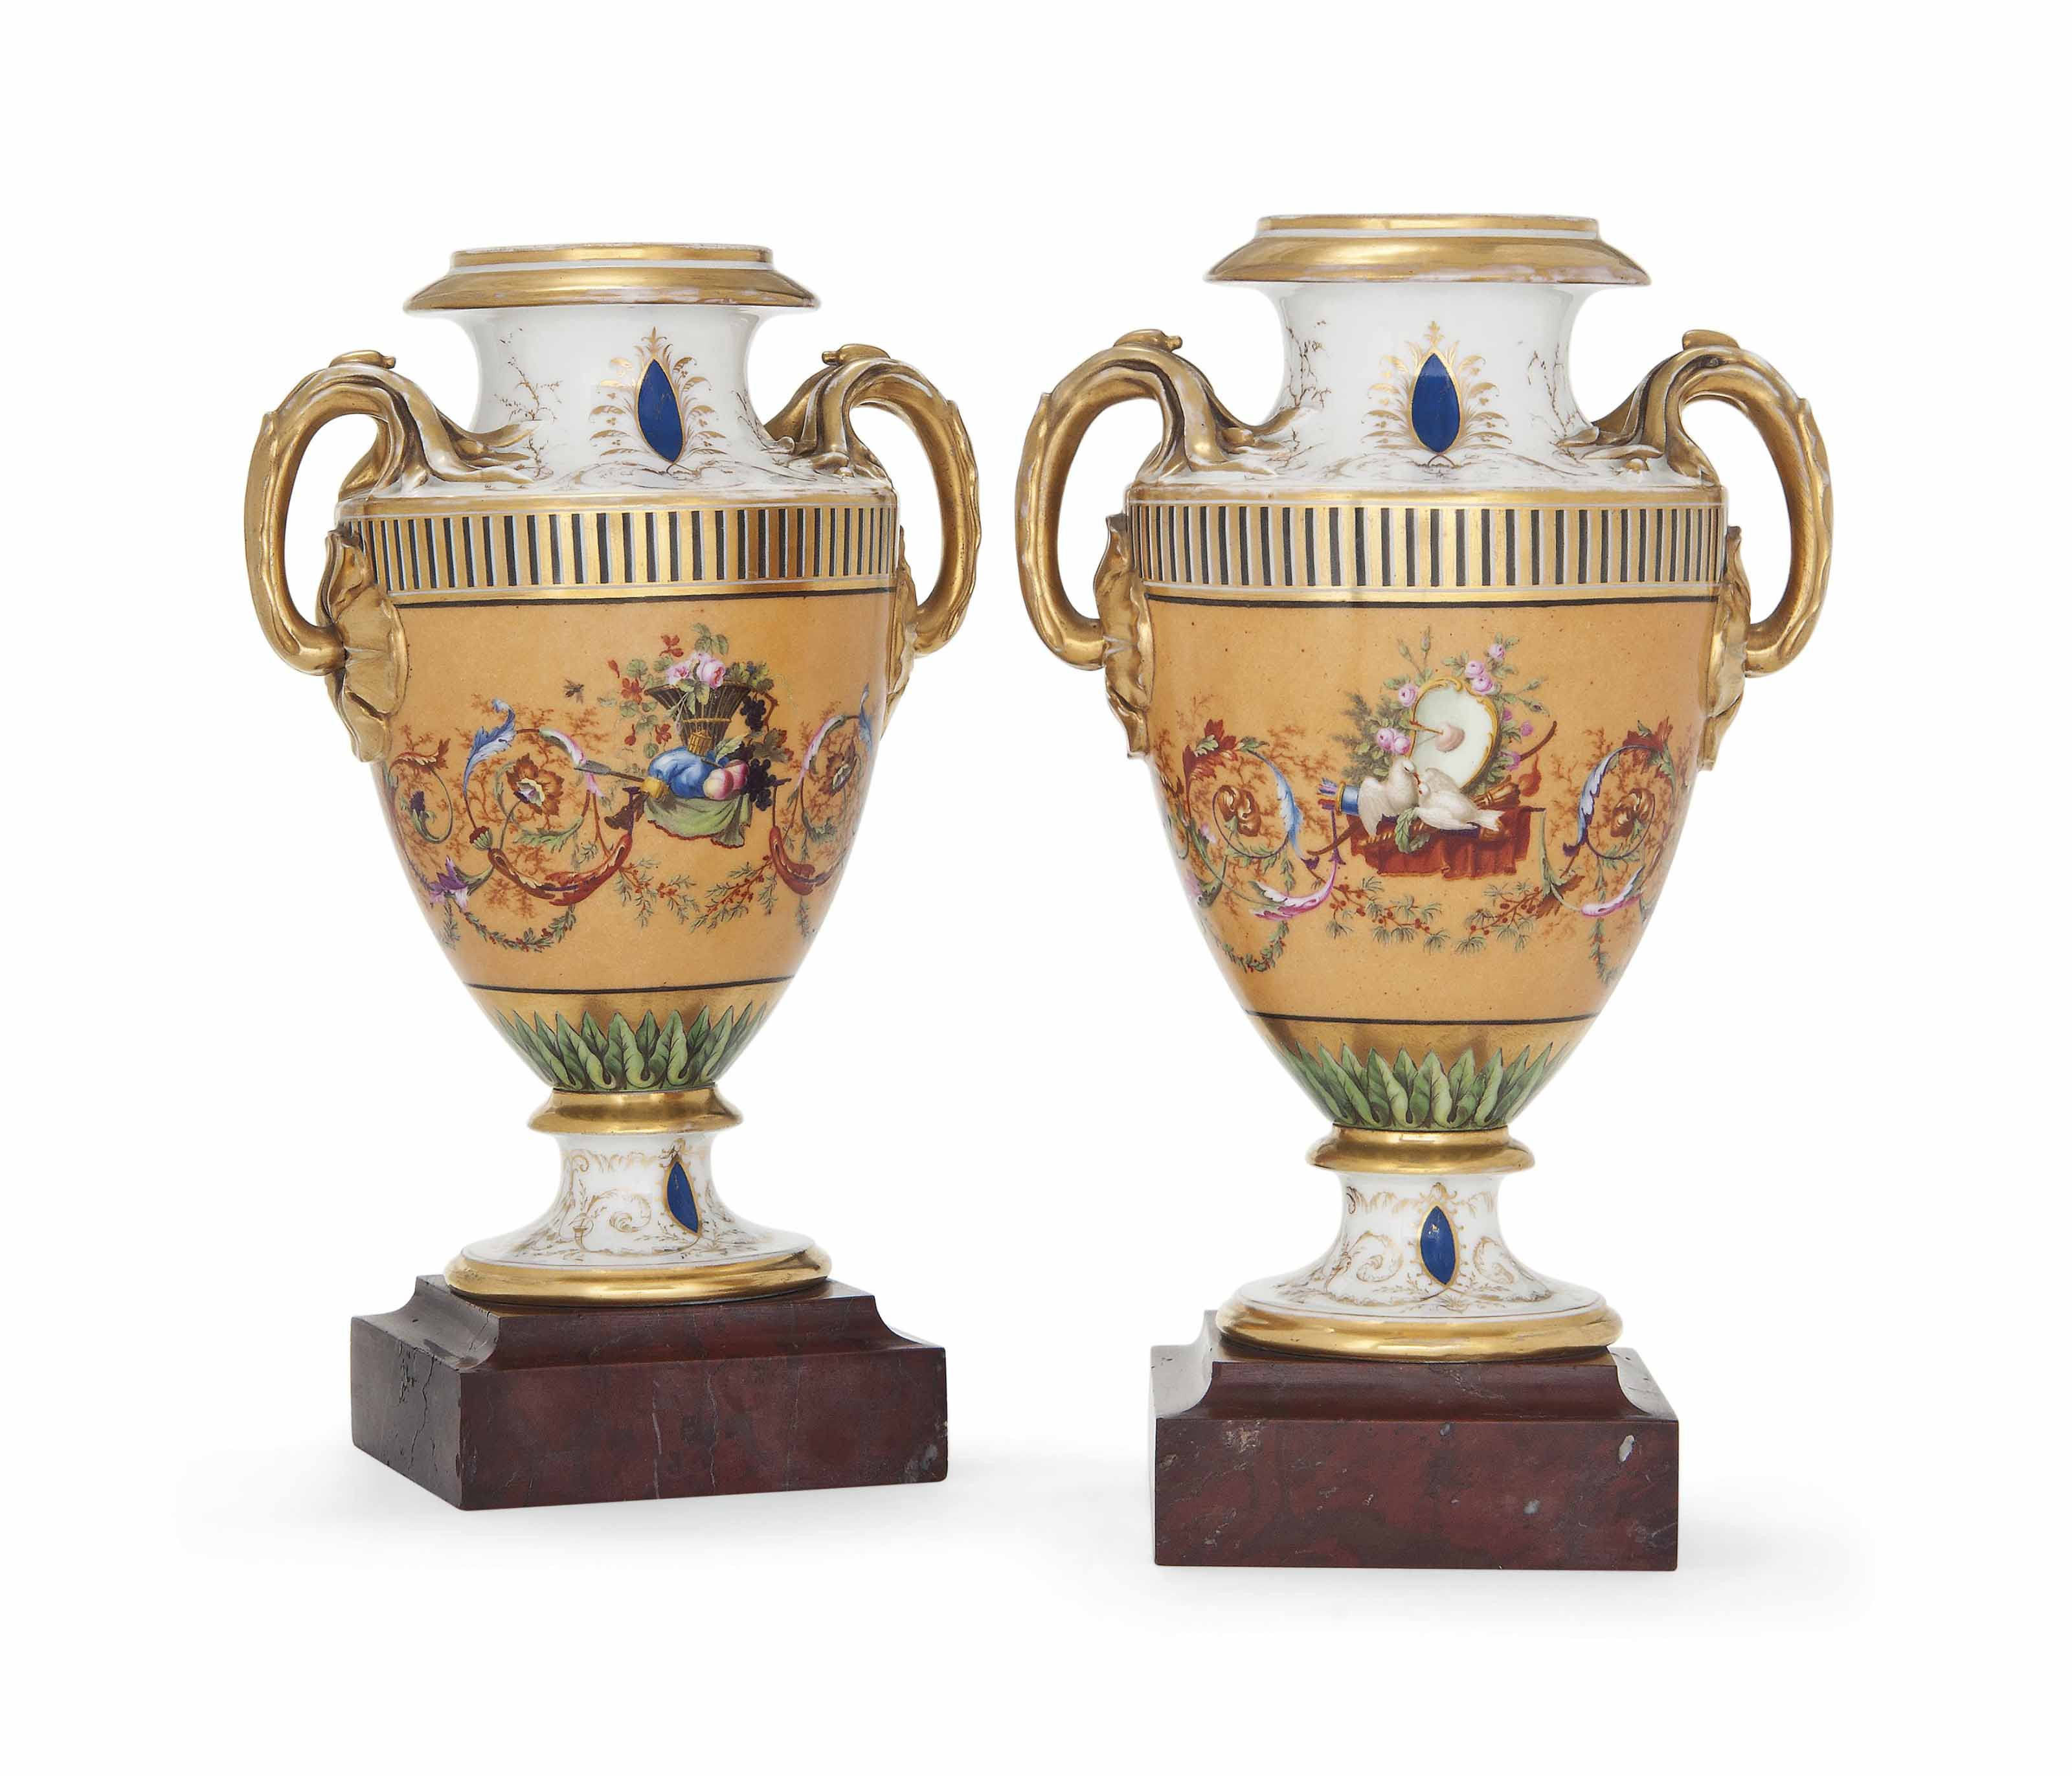 A PAIR OF PARIS PORCELAIN SALMON-GROUND TWO-HANDLED VASES